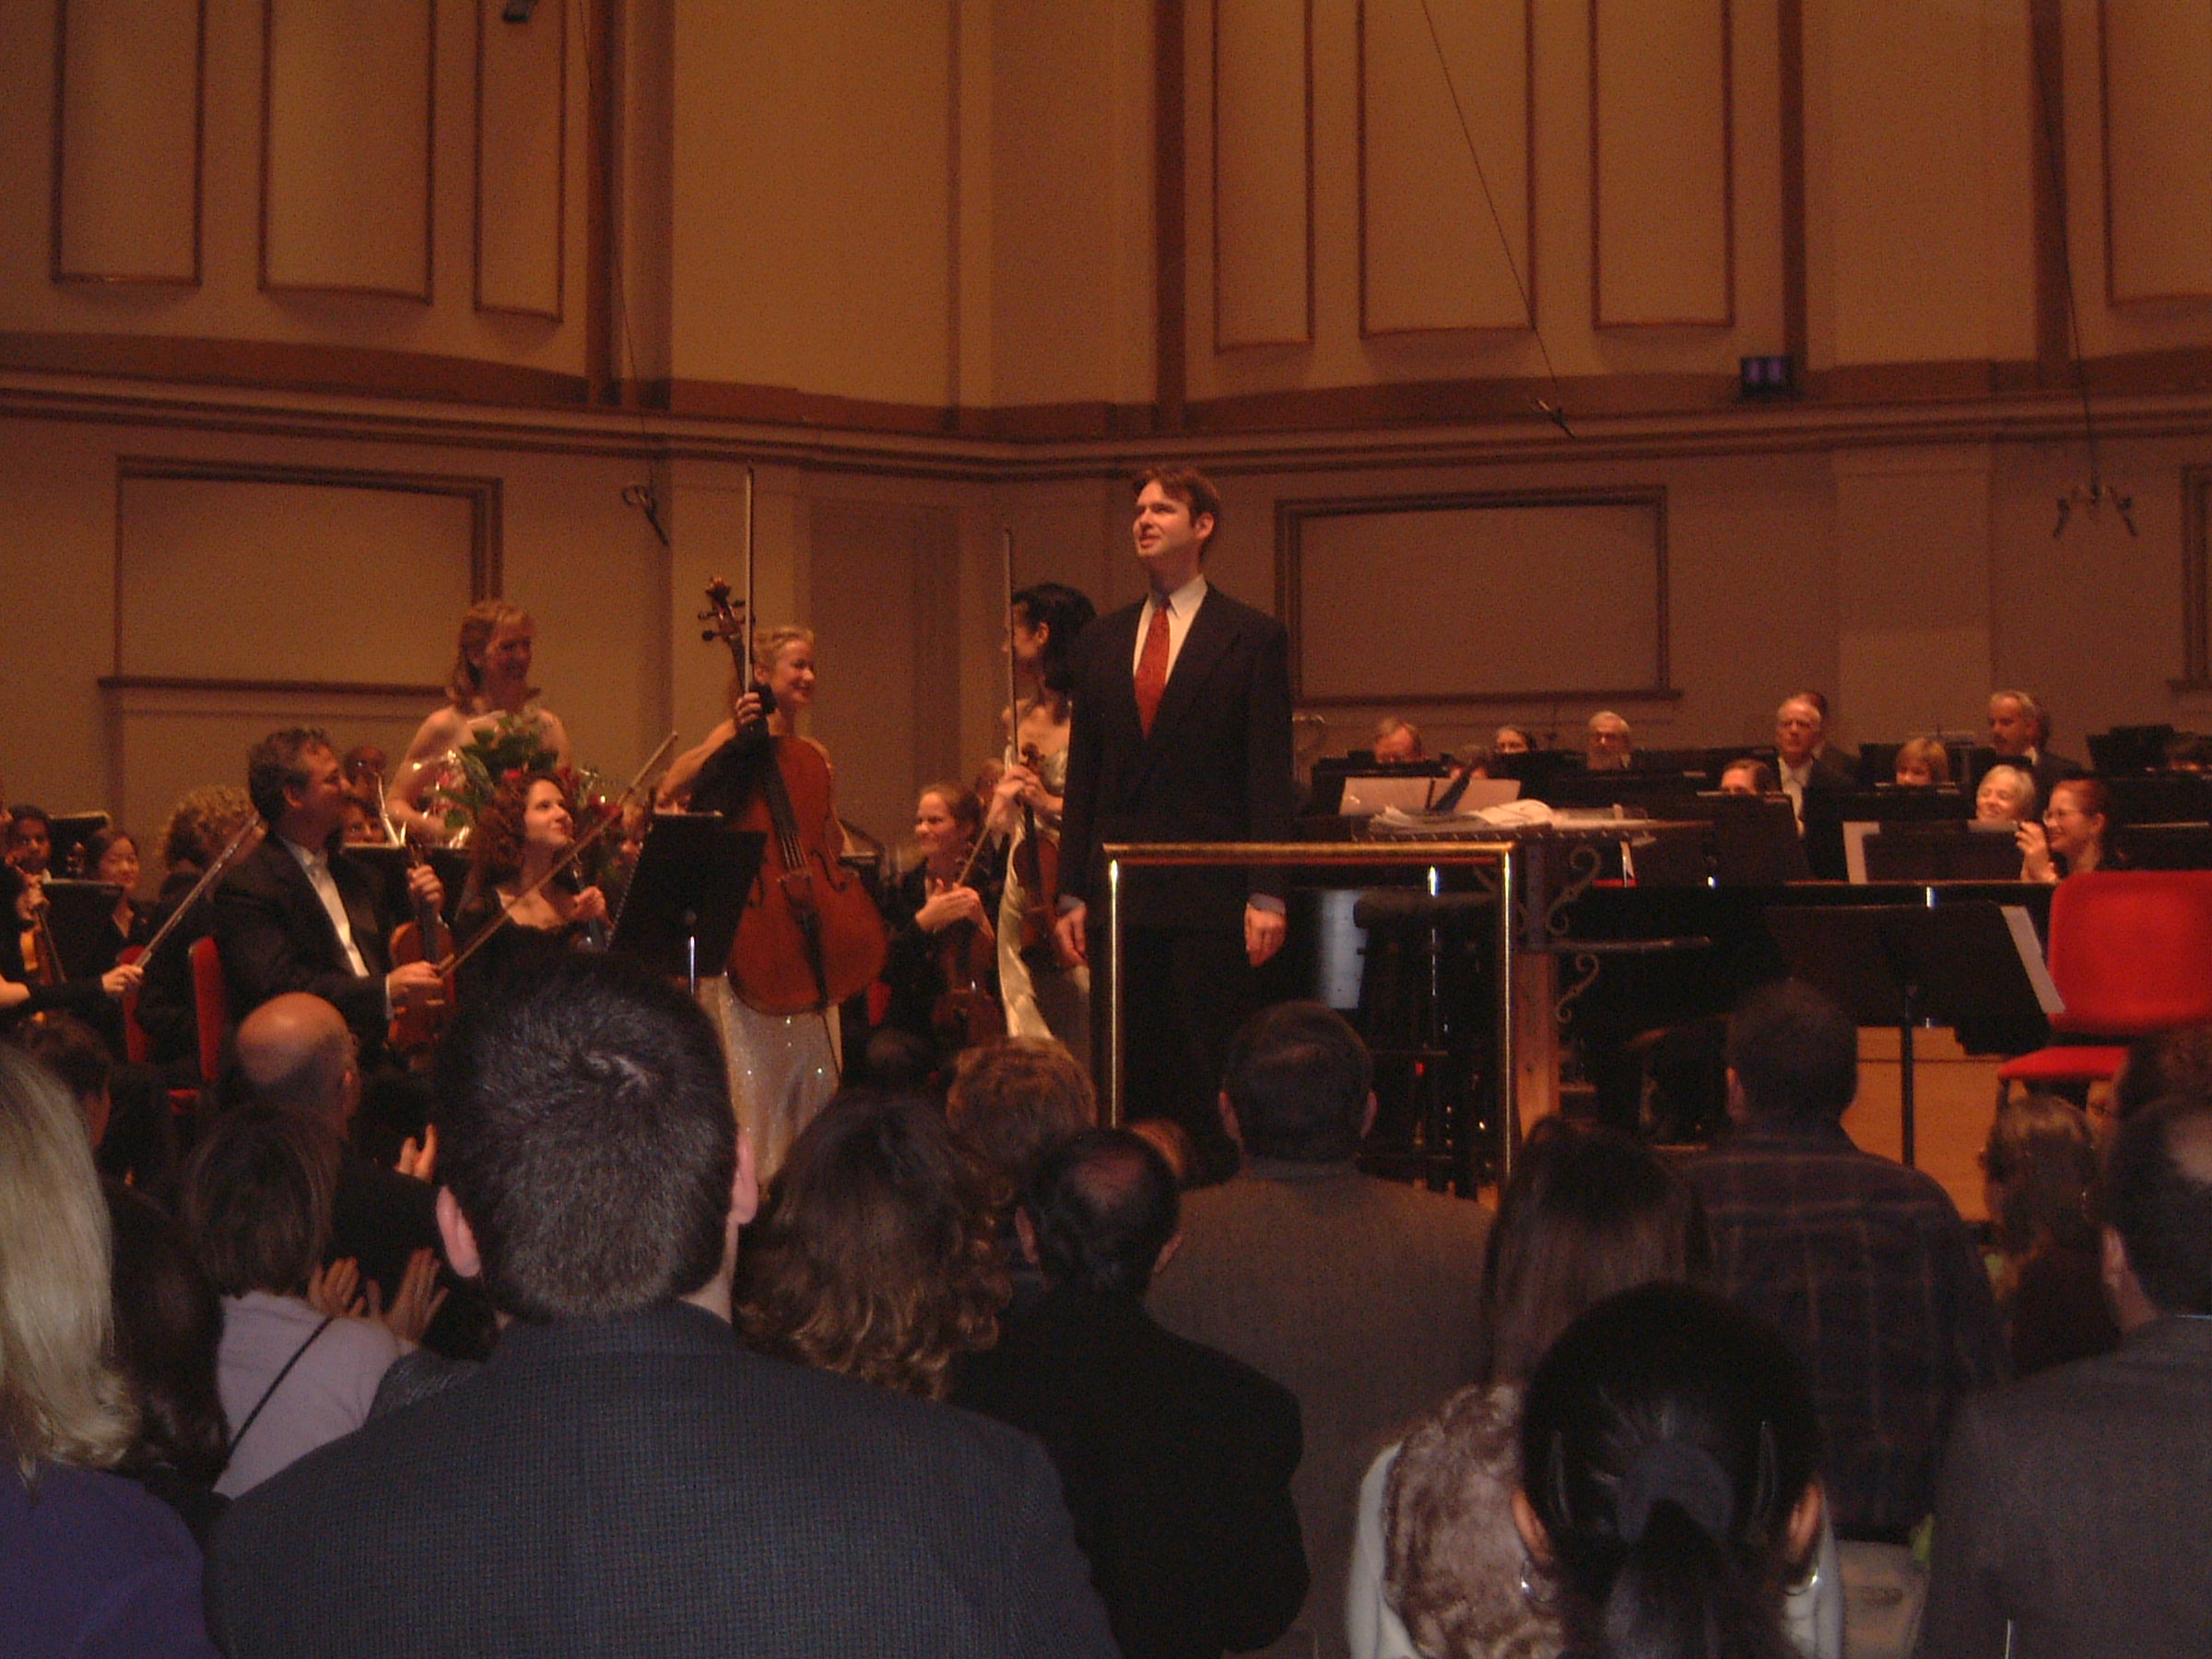 Kaska on stage with Saint Louis Symphony